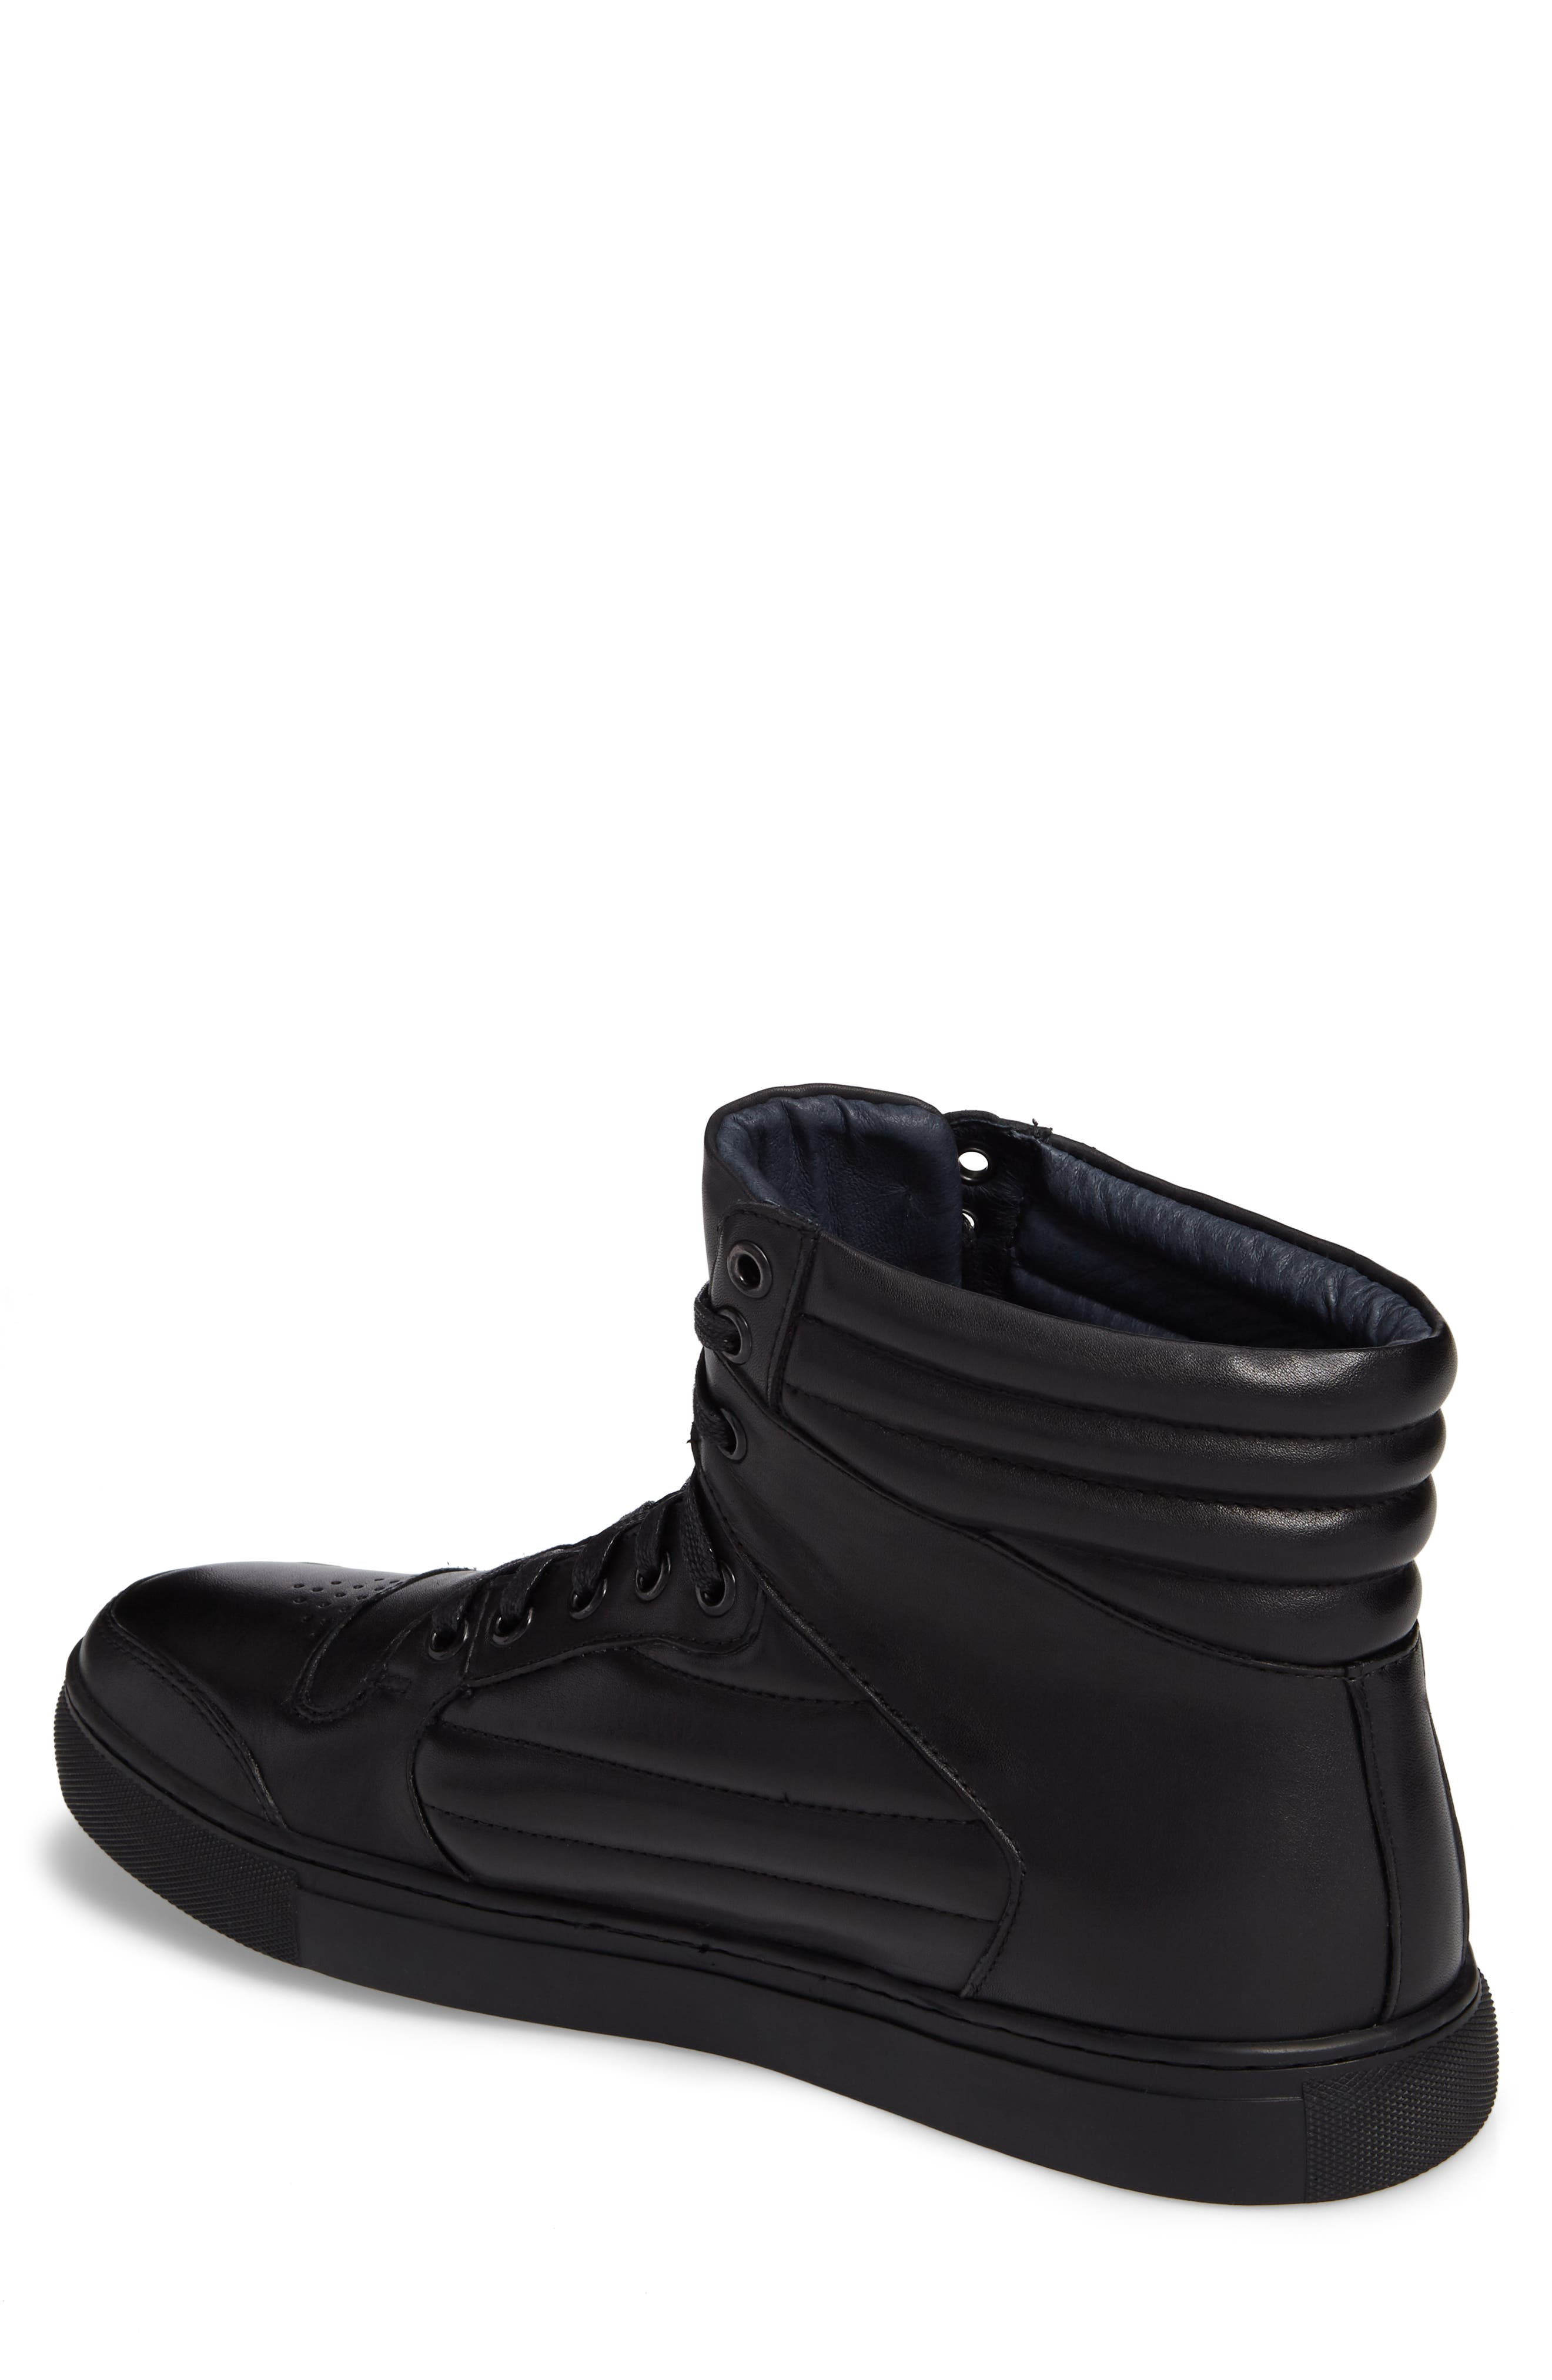 Vacdes High Top Sneaker,                             Alternate thumbnail 2, color,                             Black Leather